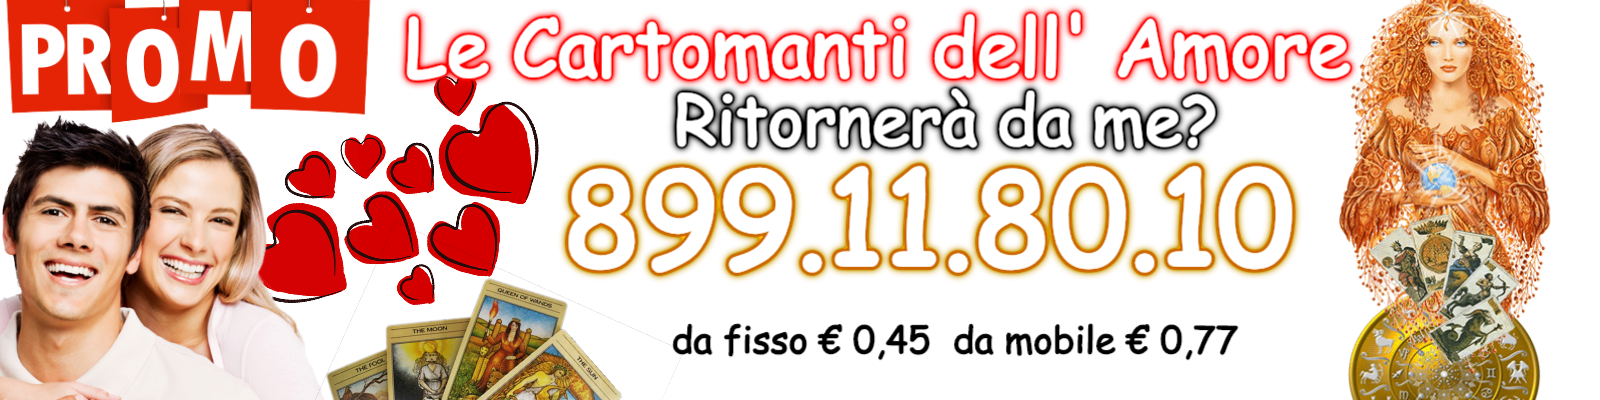 riscontri cartomanti